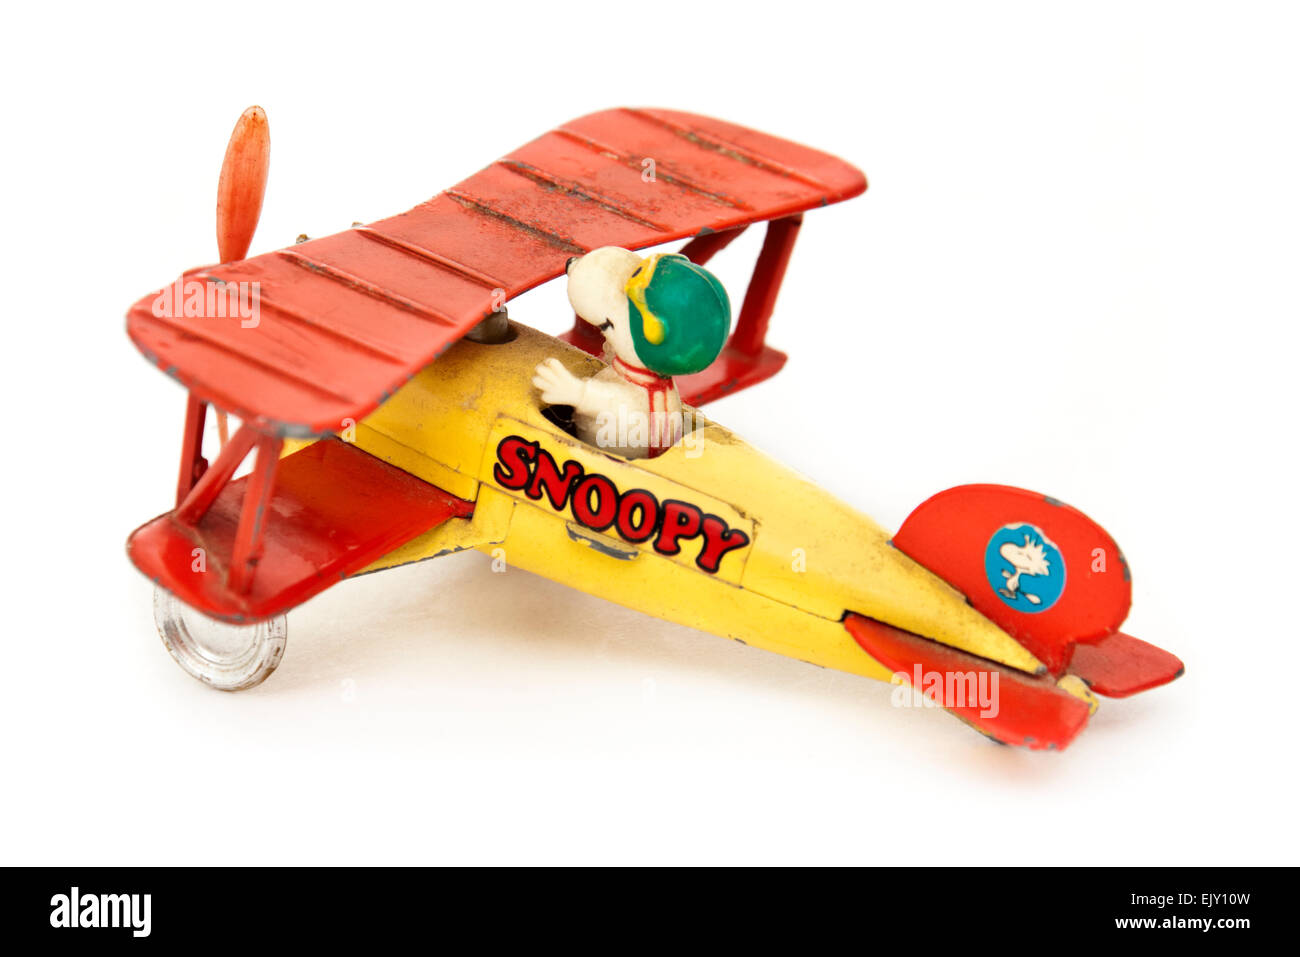 Snoopy (Charlie Brown's dog in Peanuts comic strip) vintage diecast toy airplane by Aviva Toy Co. from 1965 - Stock Image